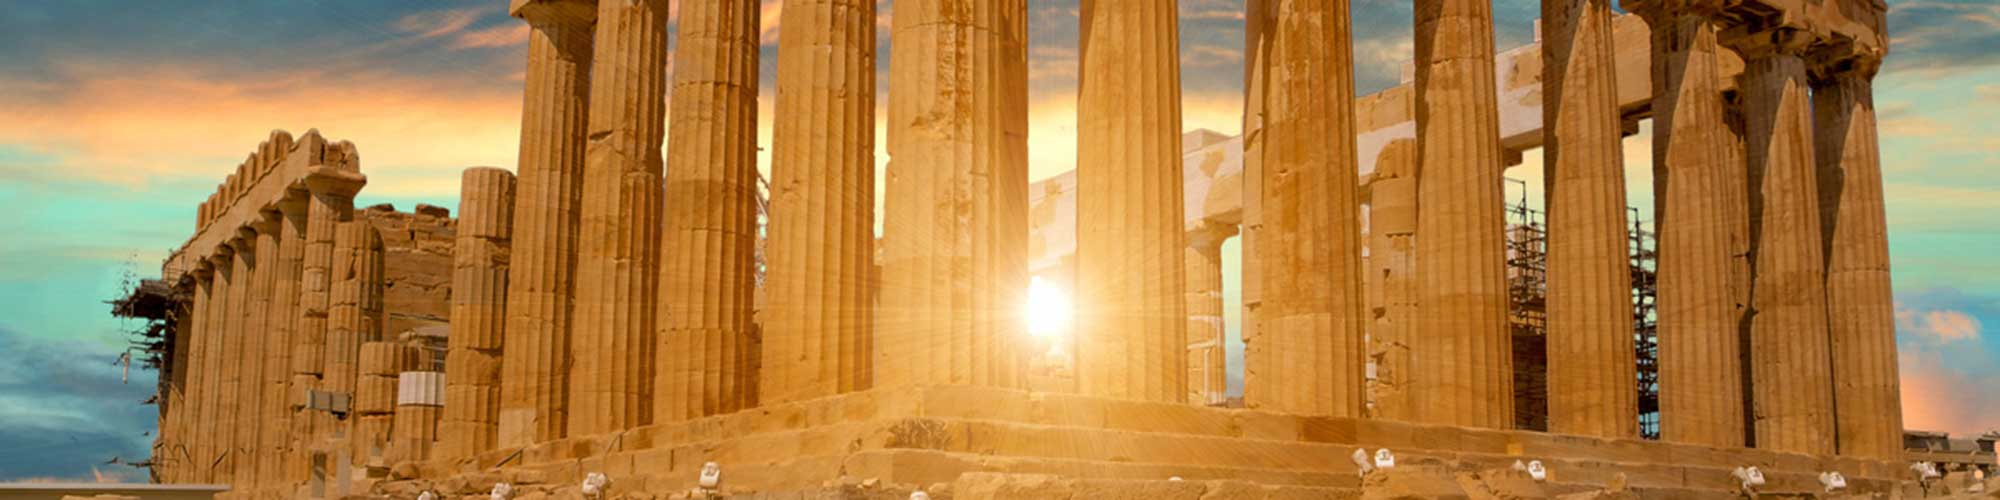 Sun rising behind the Parthenon at the Acropolis